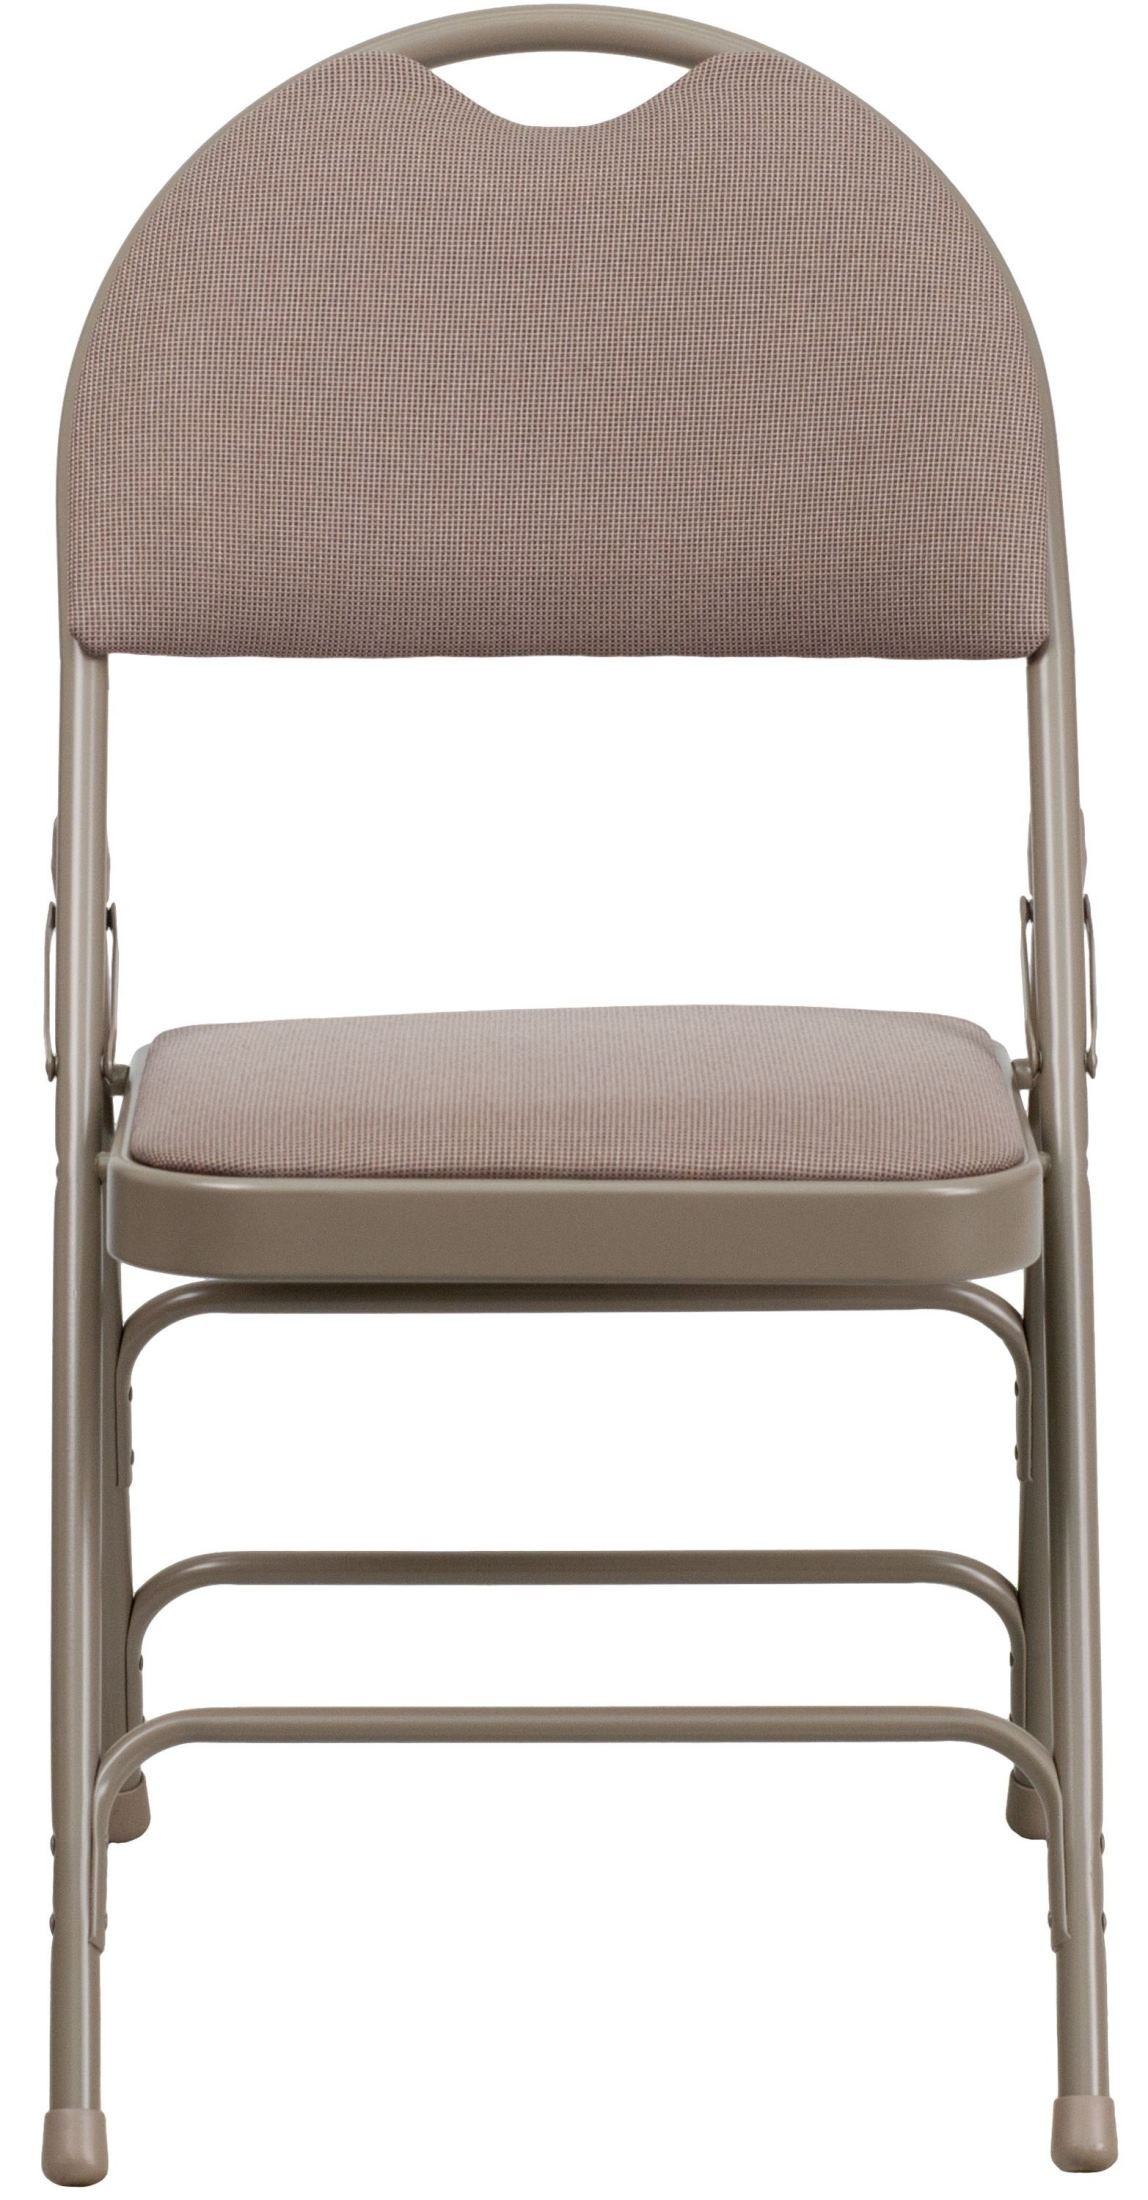 Fabric Folding Chairs Hercules Series Ultra Premium Beige Fabric Folding Chair